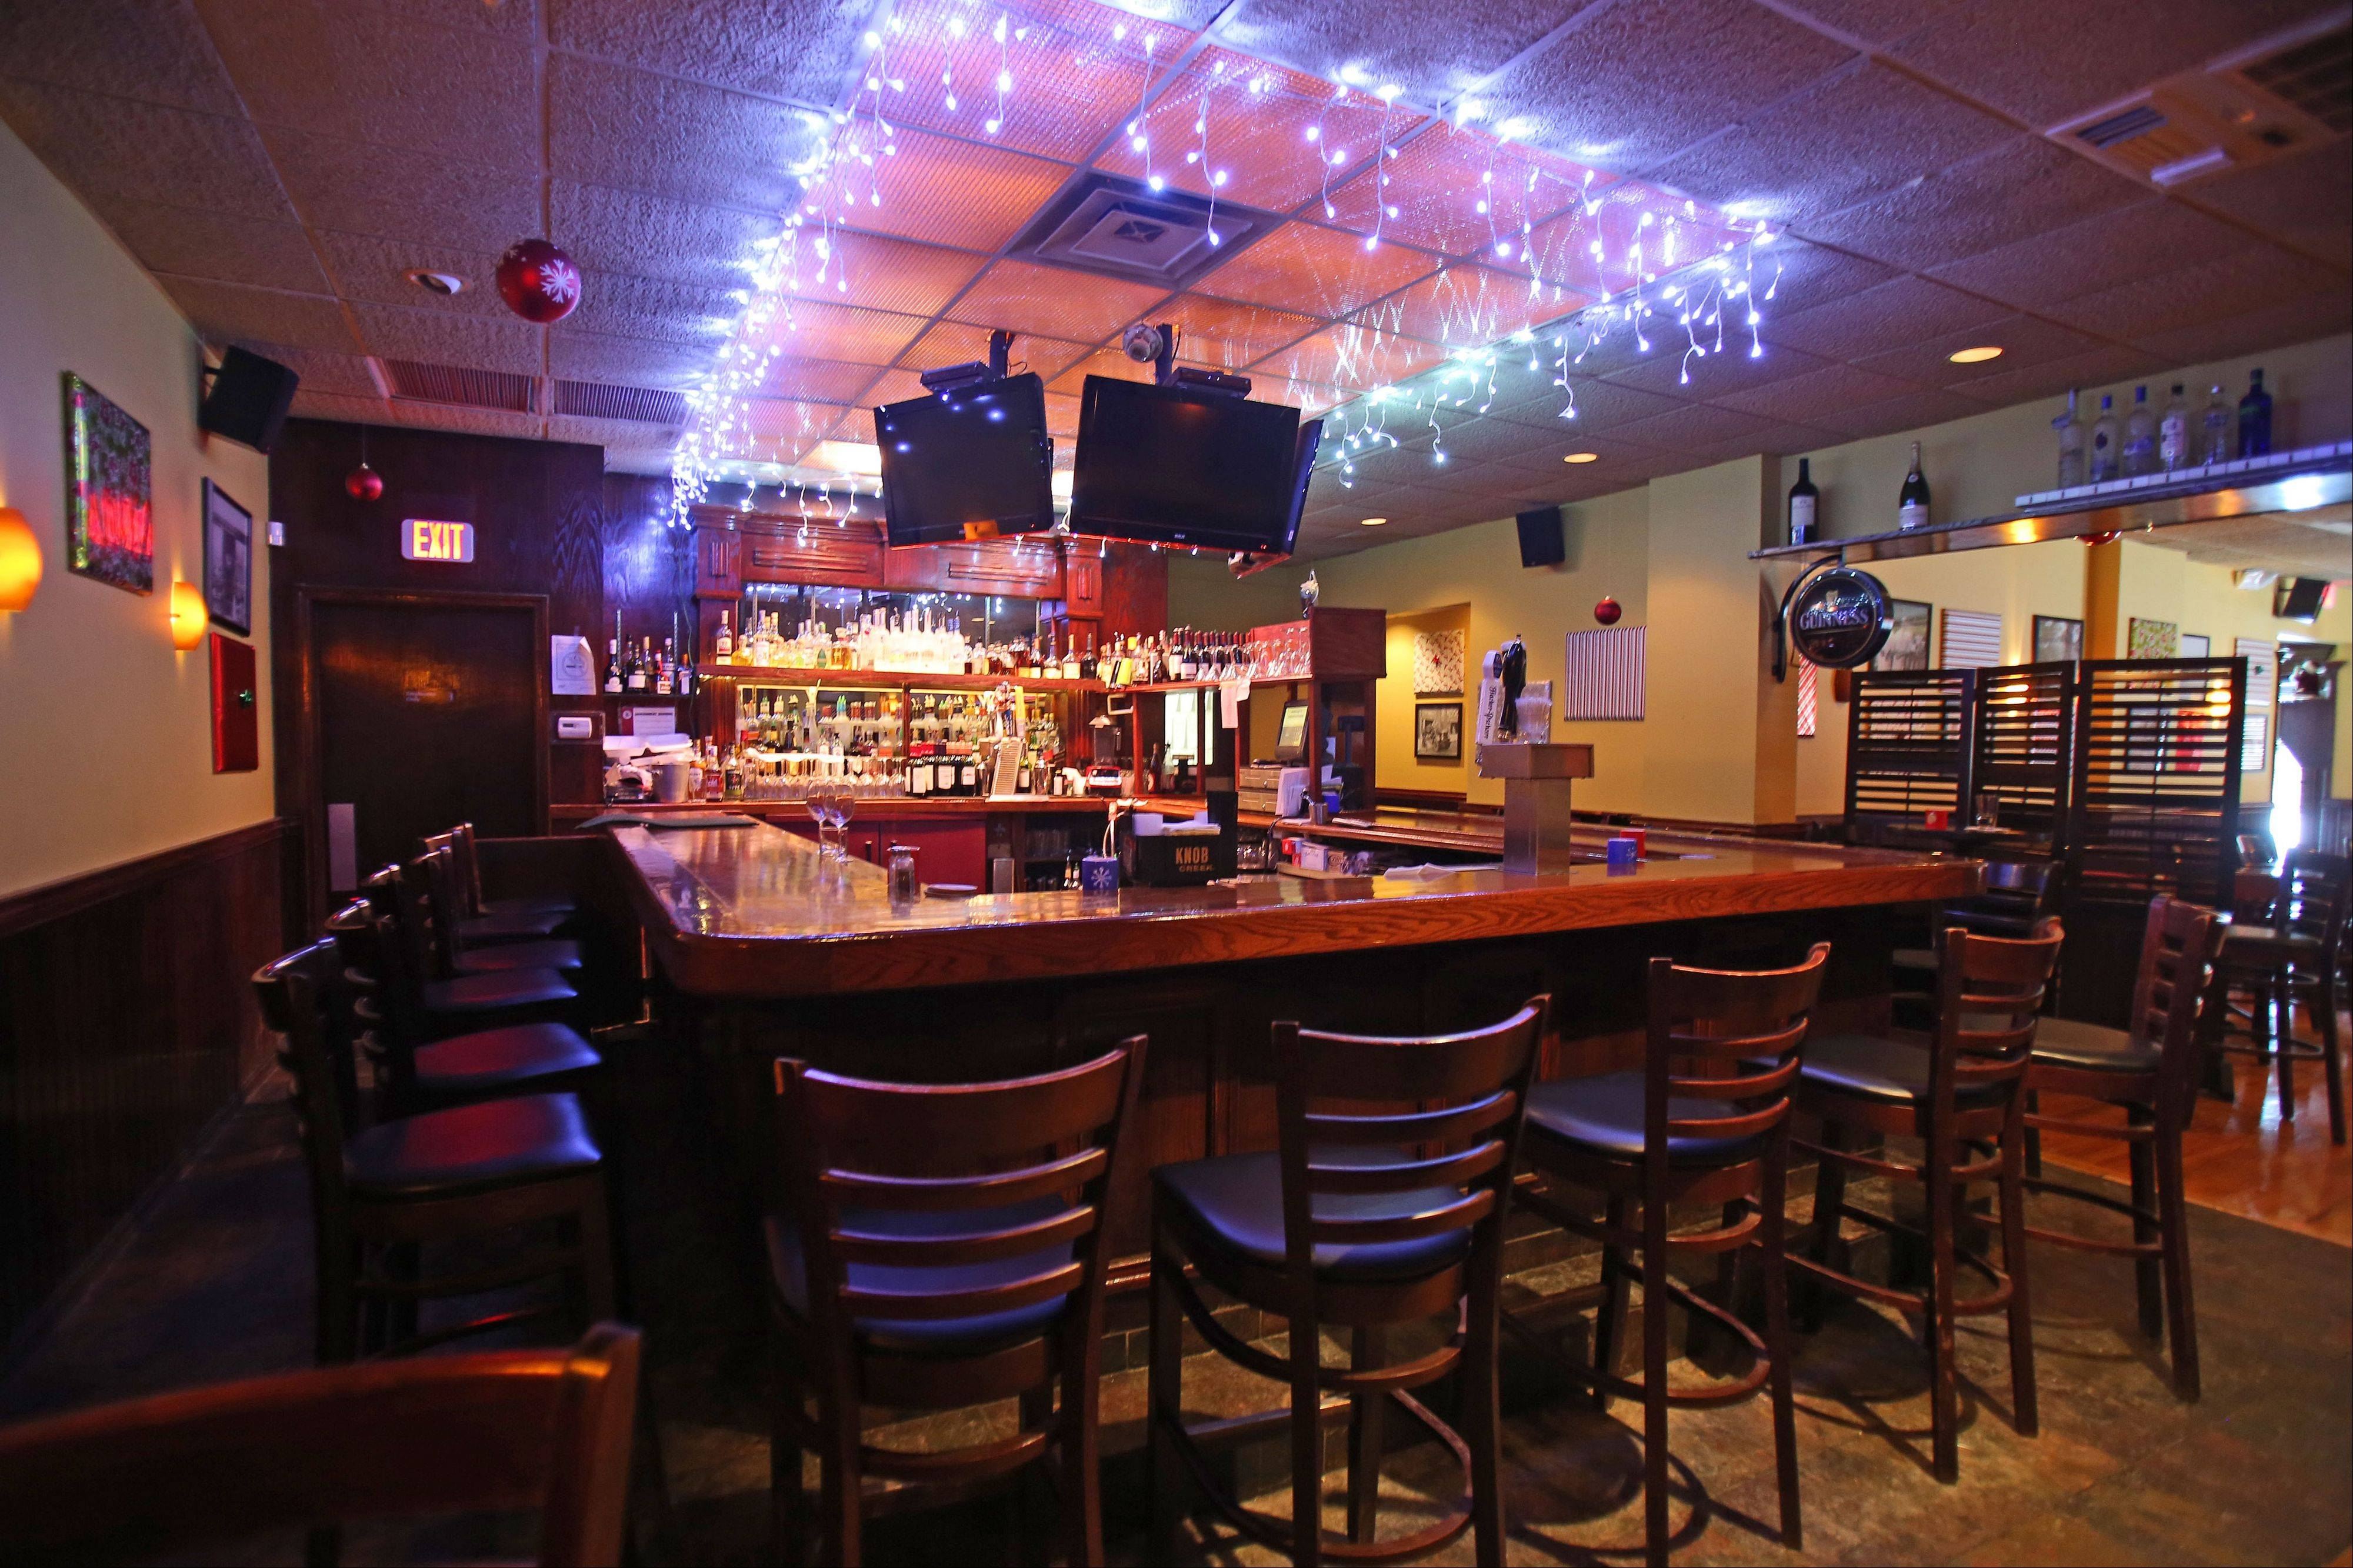 Enjoy a cocktail or glass of wine at the bar before ordering dinner at Johnny's Chophouse in Antioch.